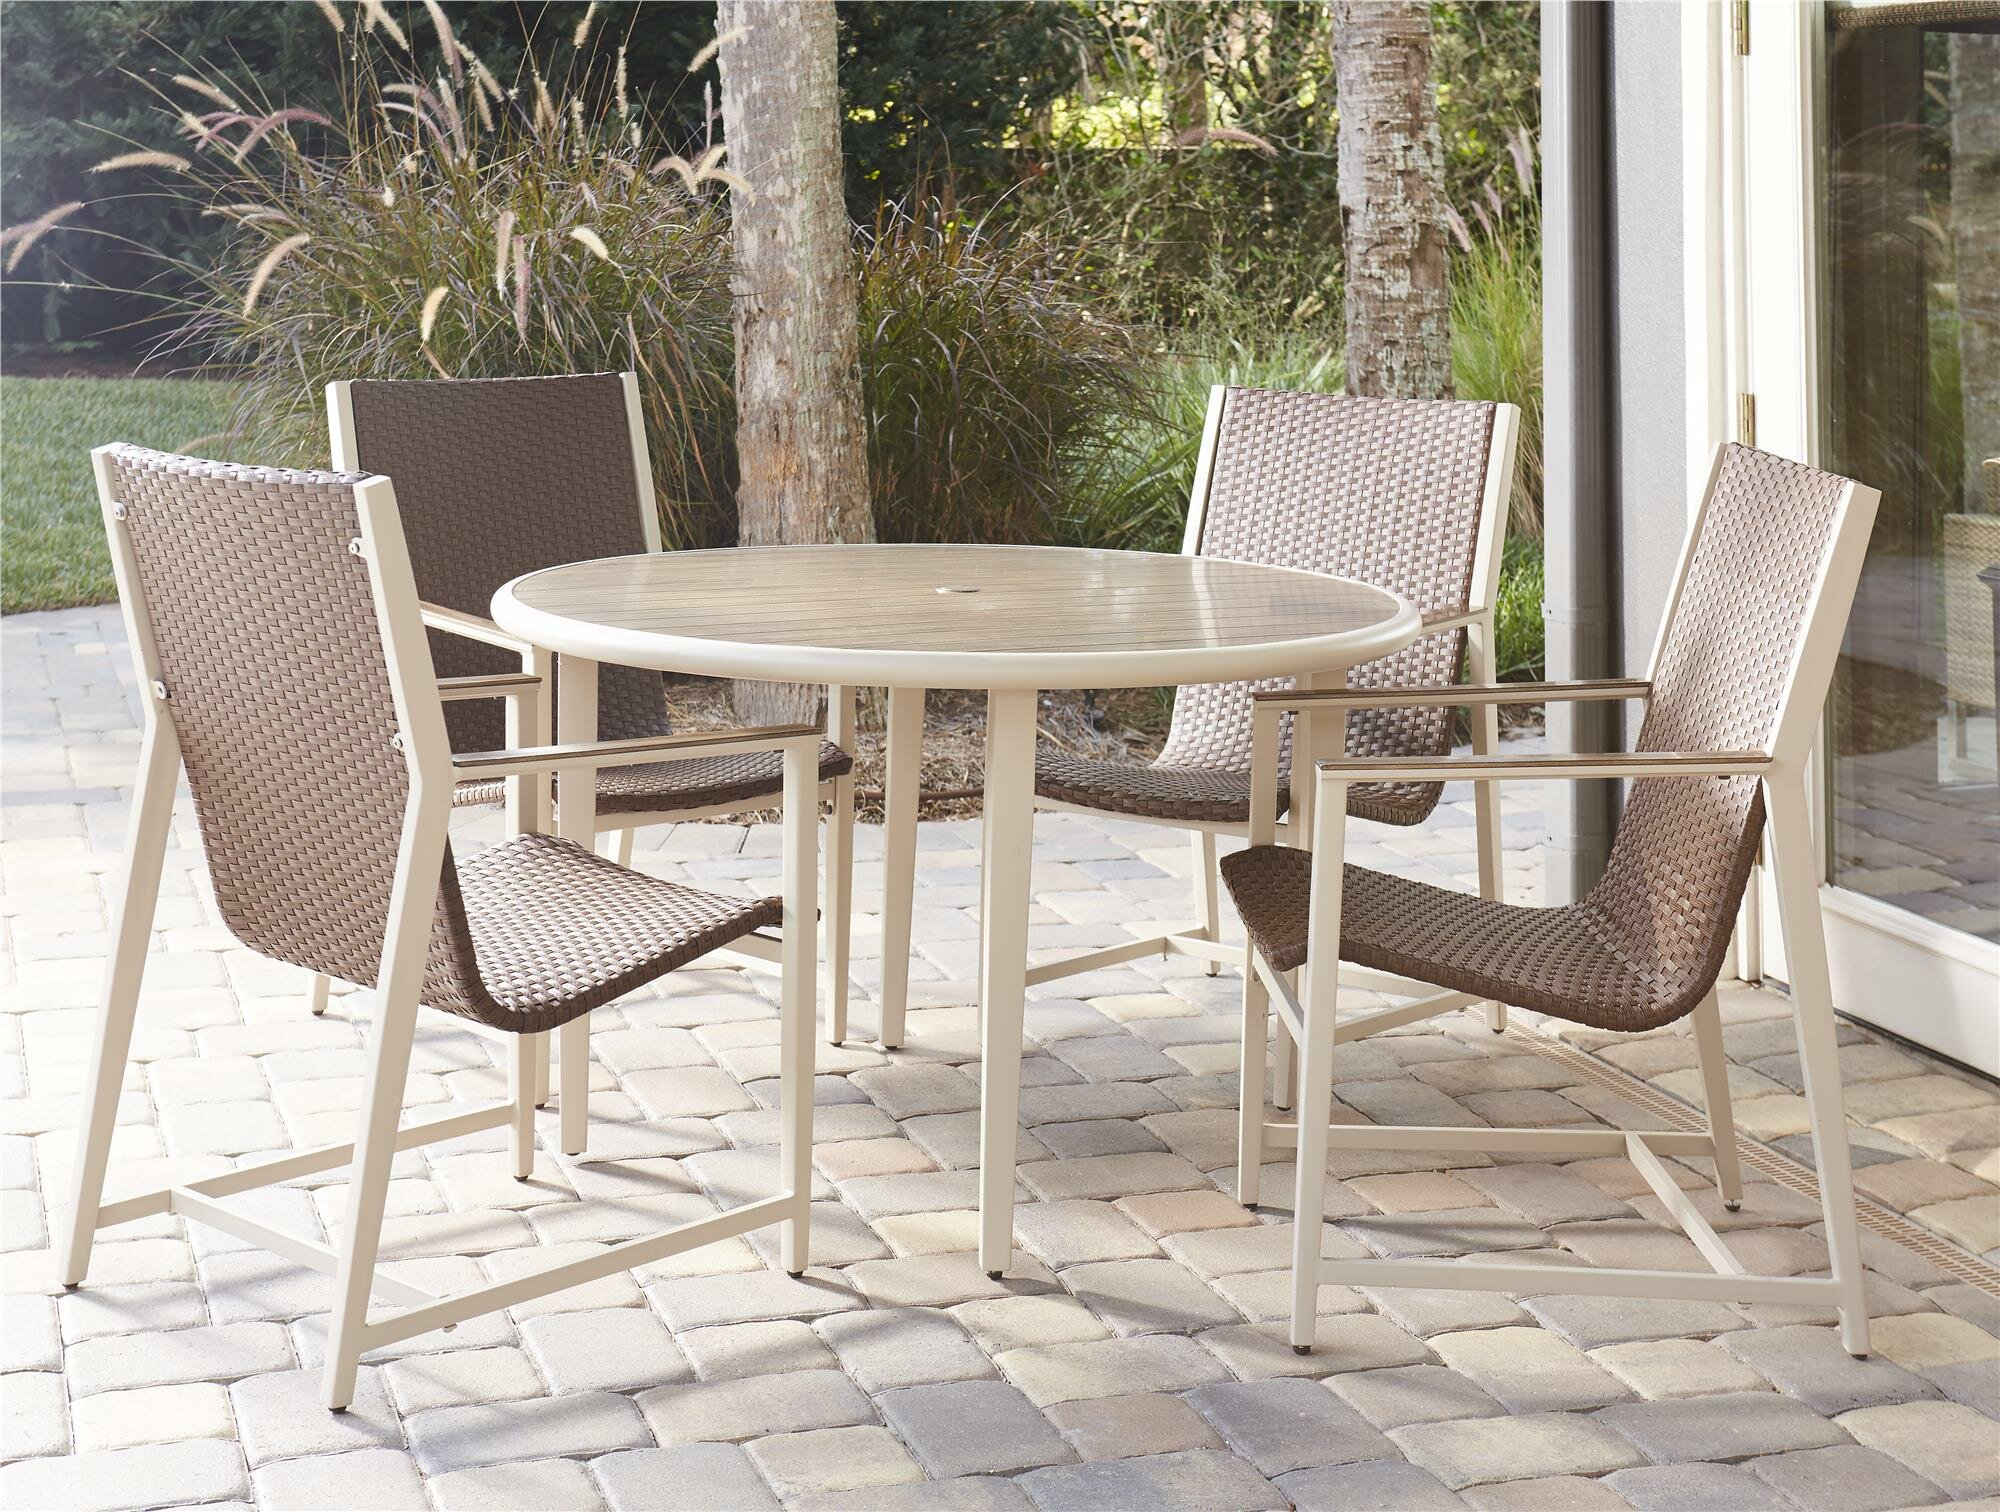 Charmant Novogratz Santa Fe 5 Piece Dining Set | Wayfair